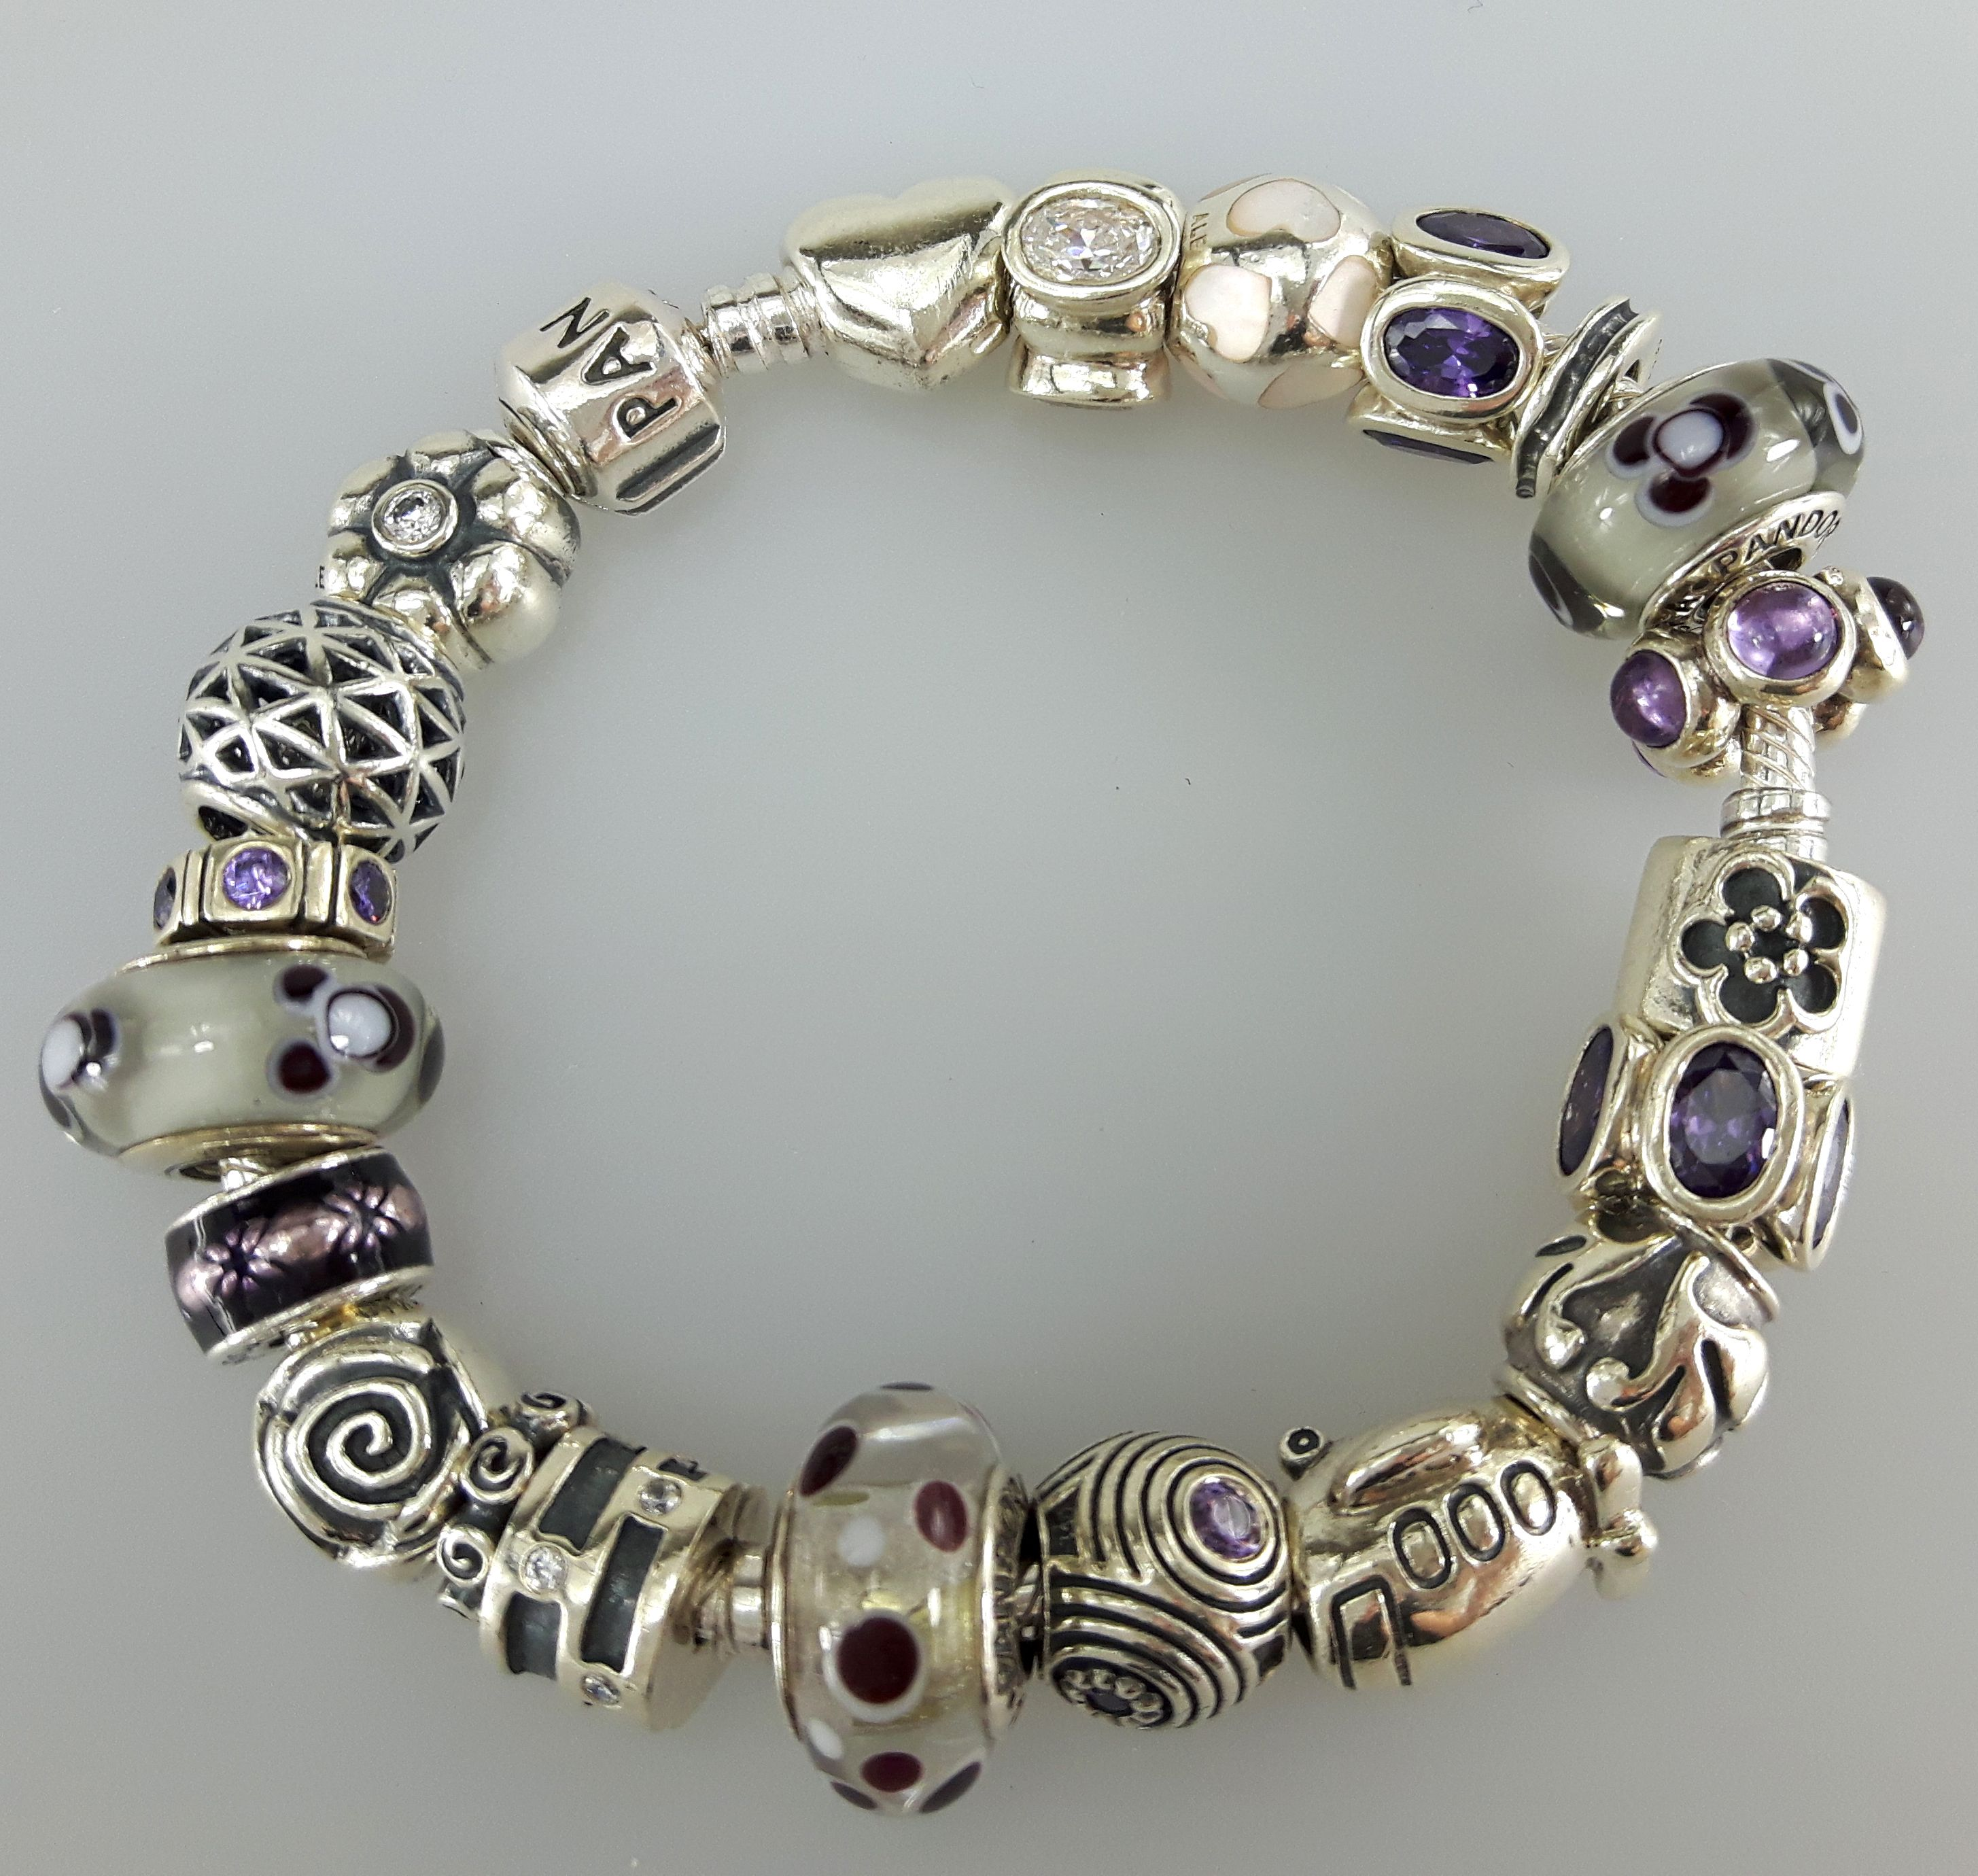 Who Sells Pandora Jewelry: Sell Pandora Jewelry With Us (With Images)